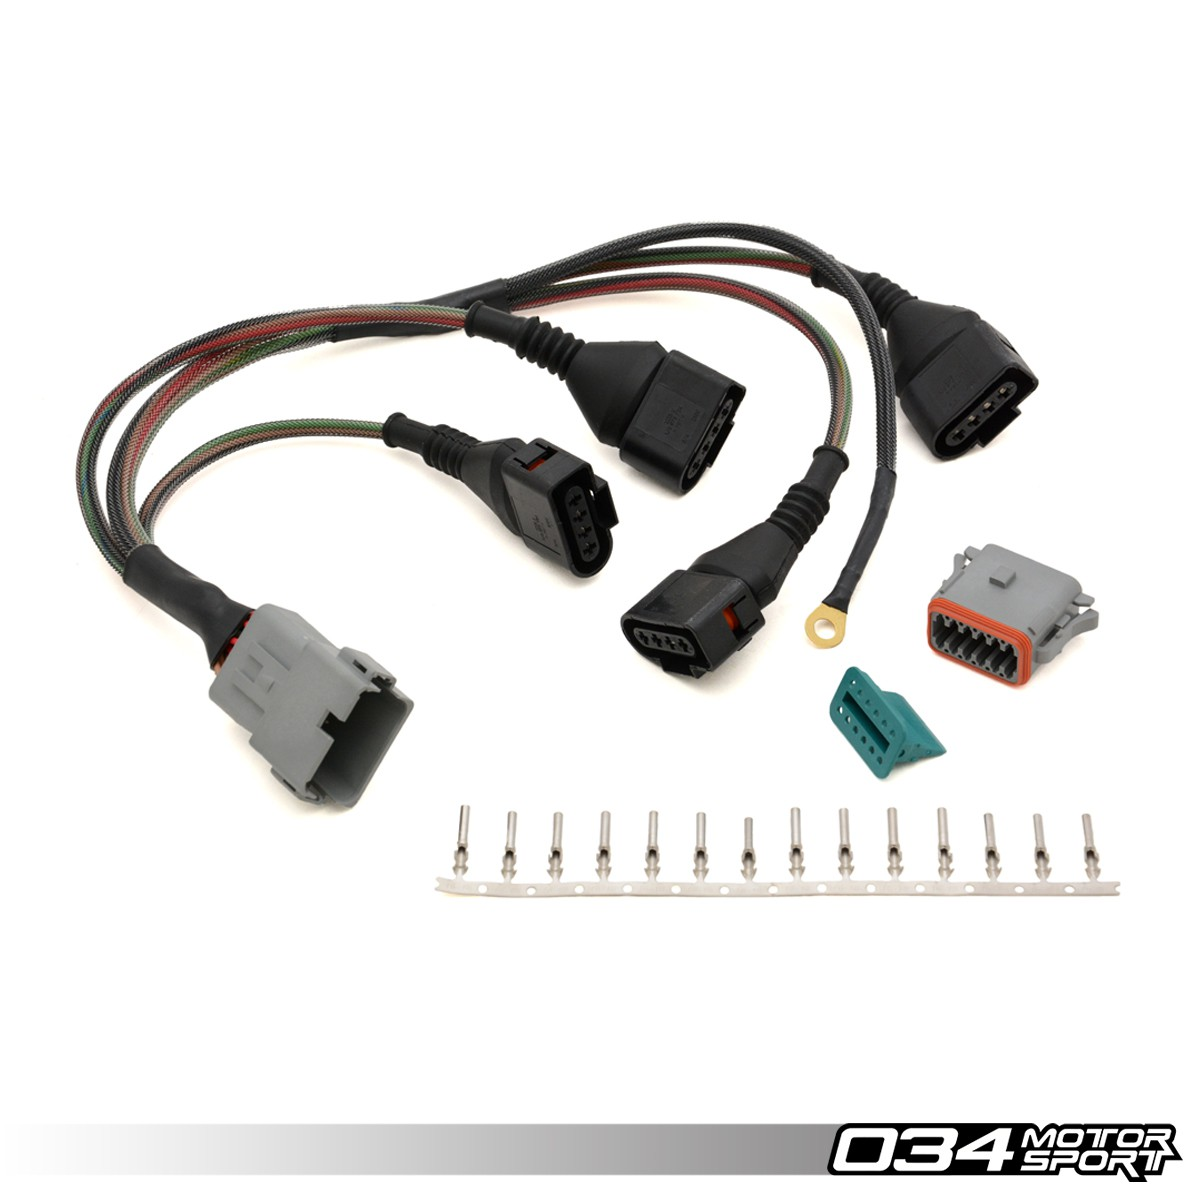 Repair/Update Harness, Audi/Volkswagen 1.8T with 4-Wire Coils |